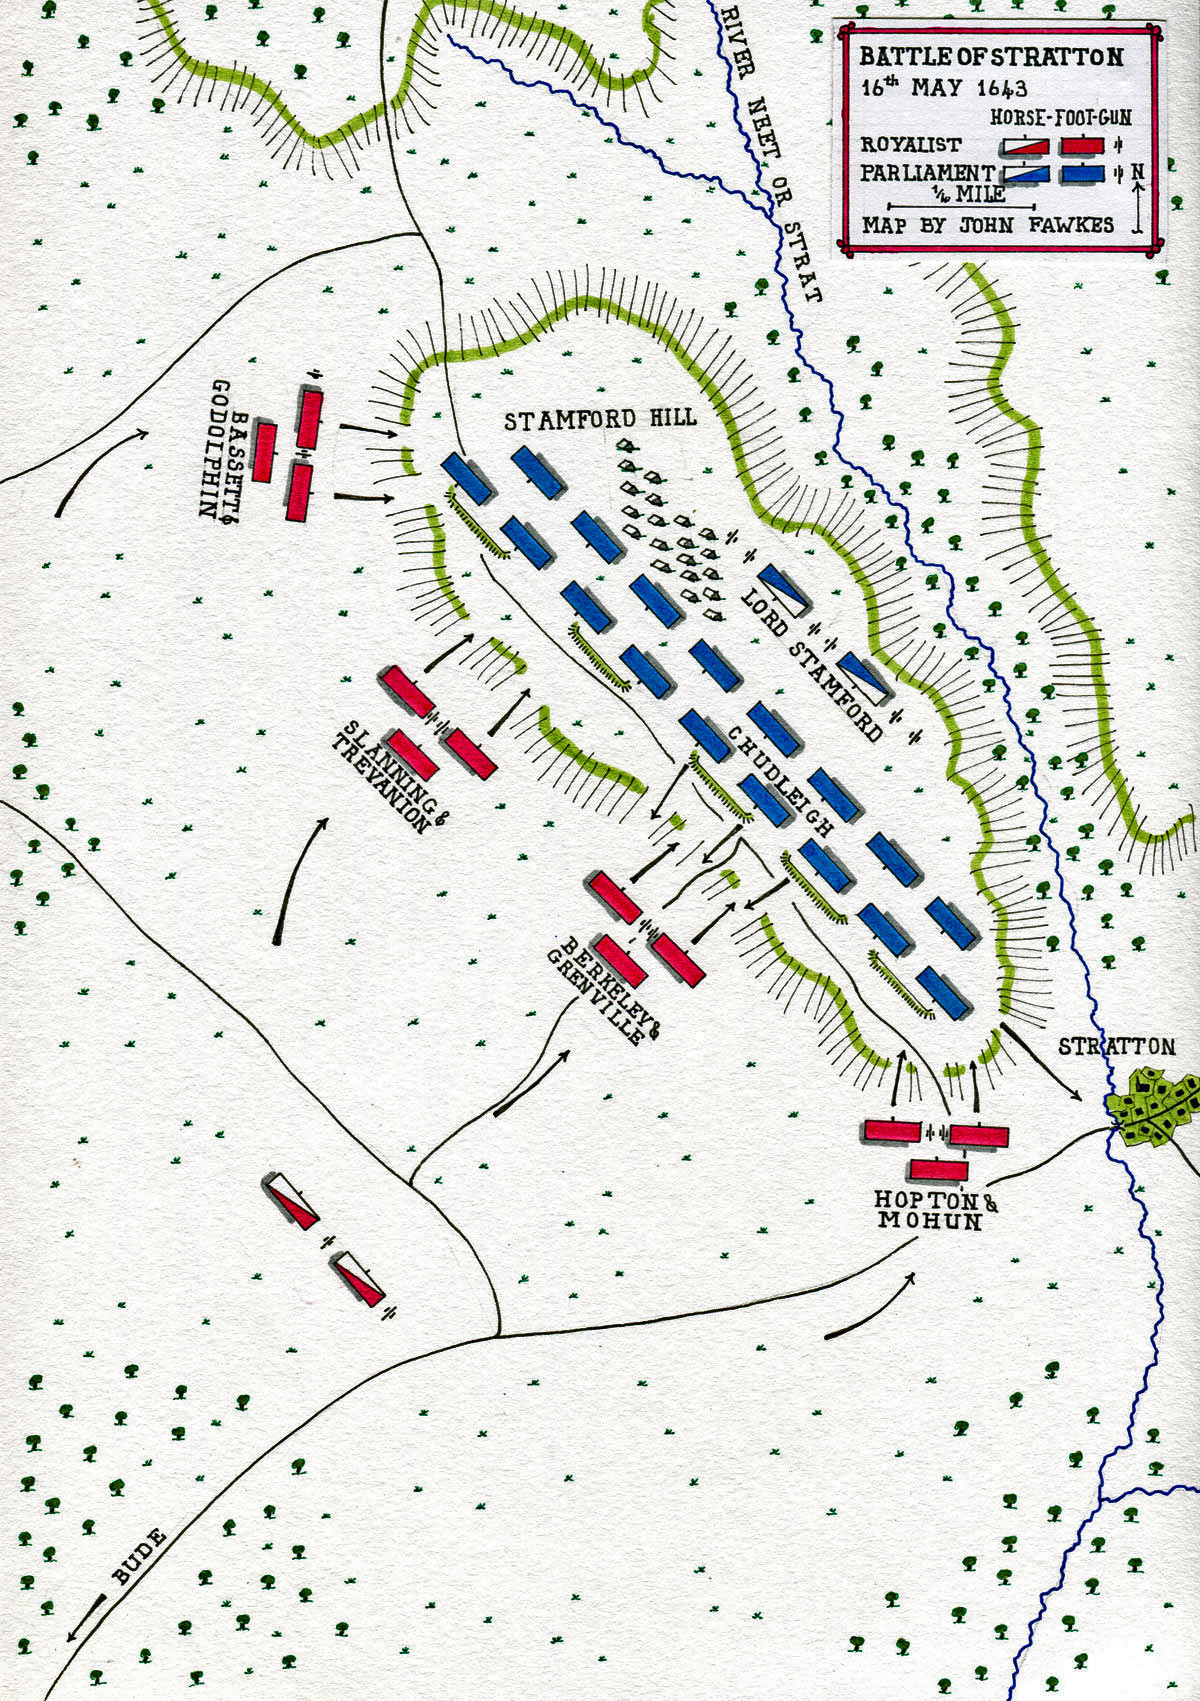 Map of Battle of Stratton 16th May 1643 during the English Civil War: map by John Fawkes